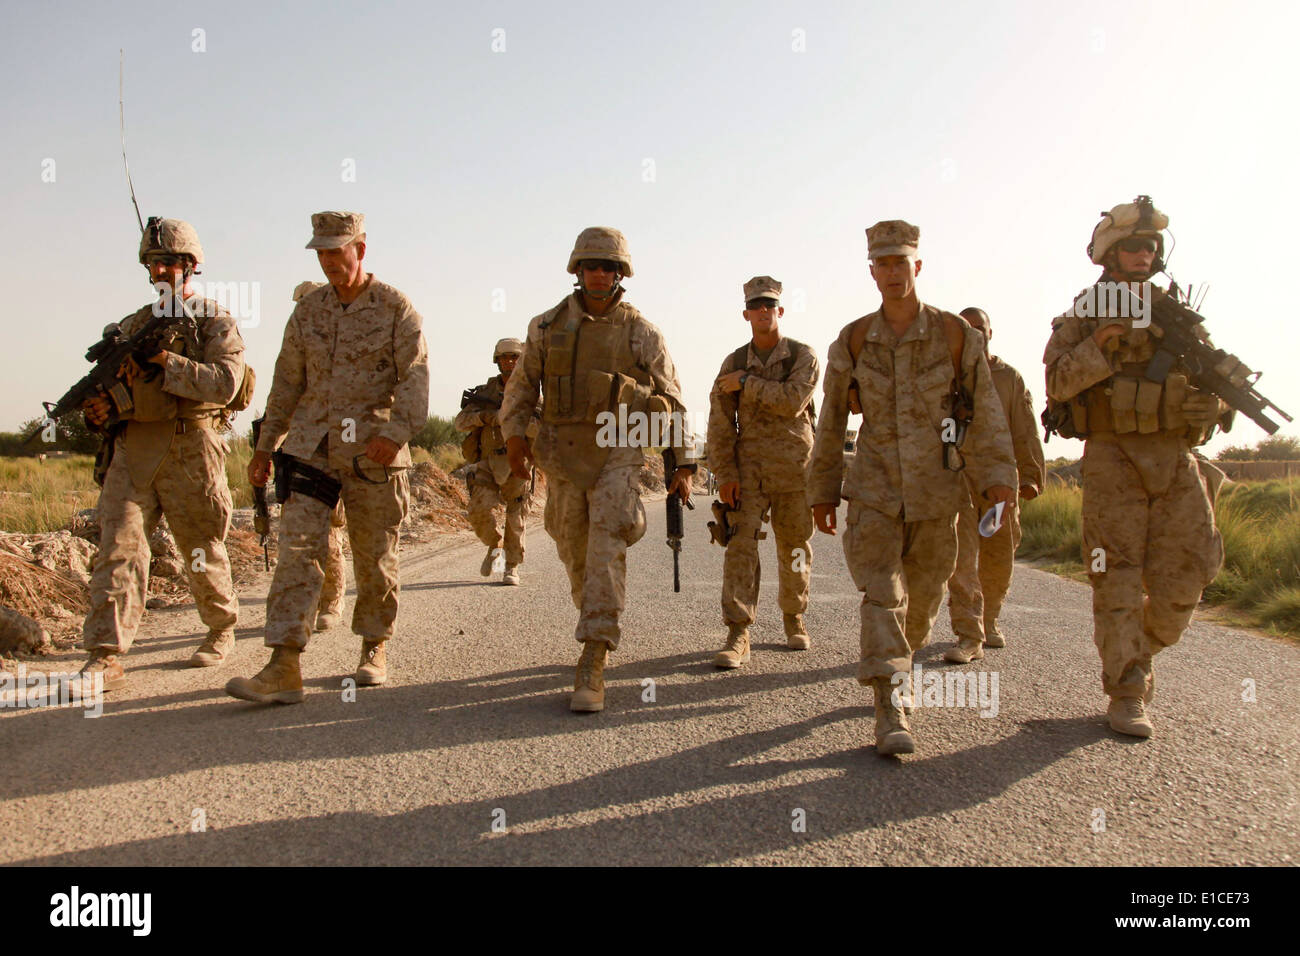 U.S. Marine Corps Lt. Gen. Joseph Dunford, second from left, the commander of I Marine Expeditionary Force, and Stock Photo